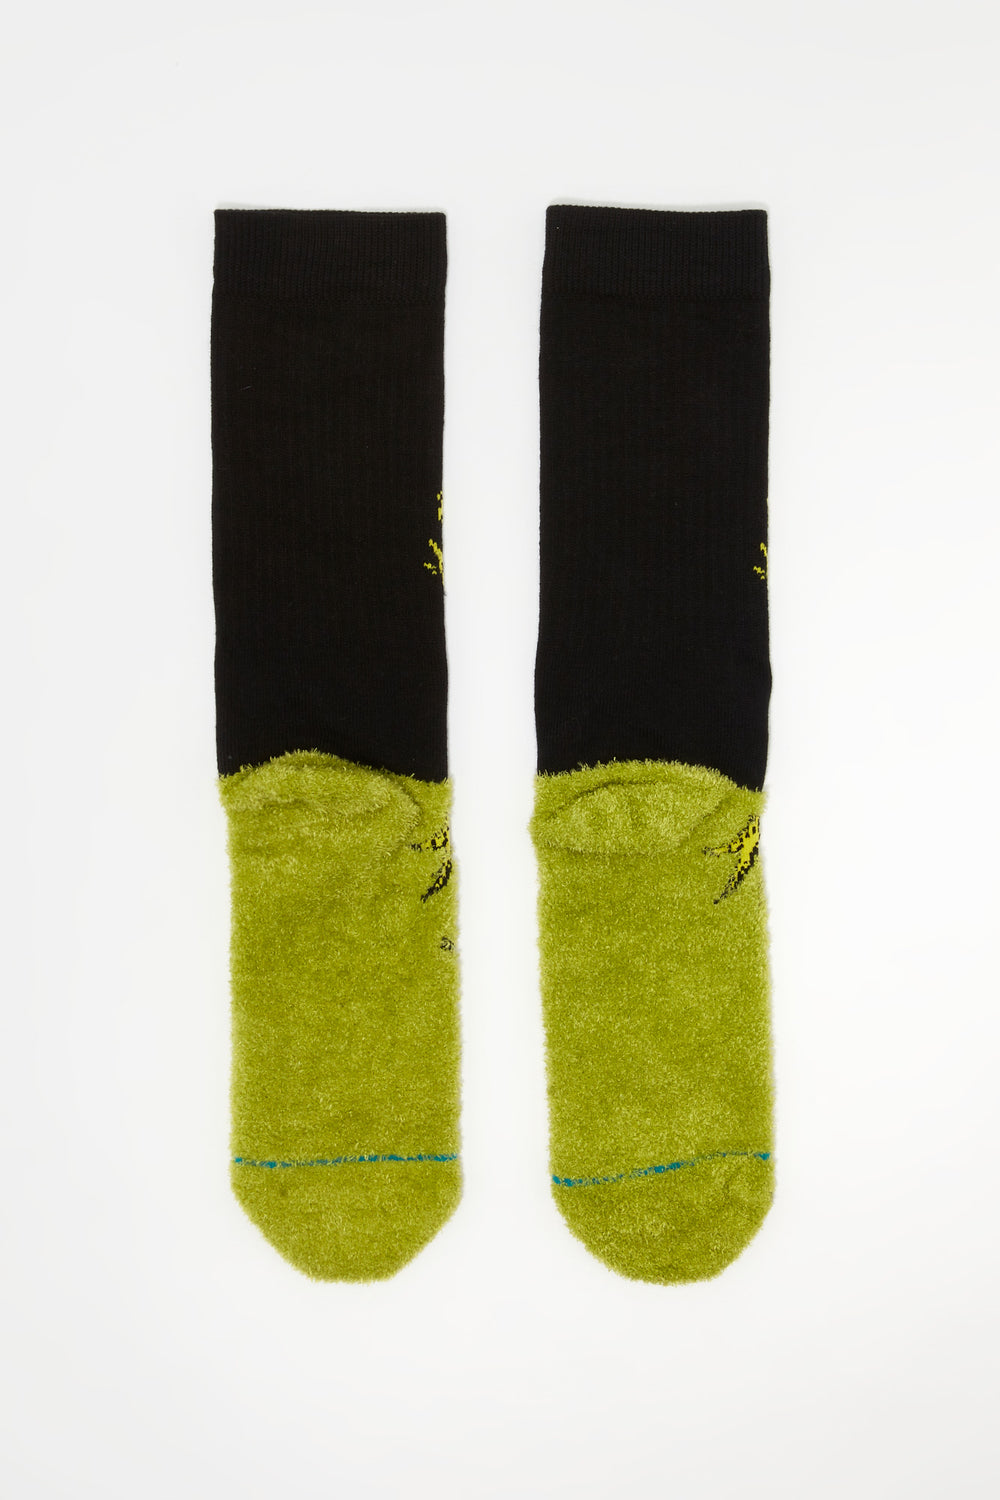 Chaussettes The Grinch Stance Homme Vert